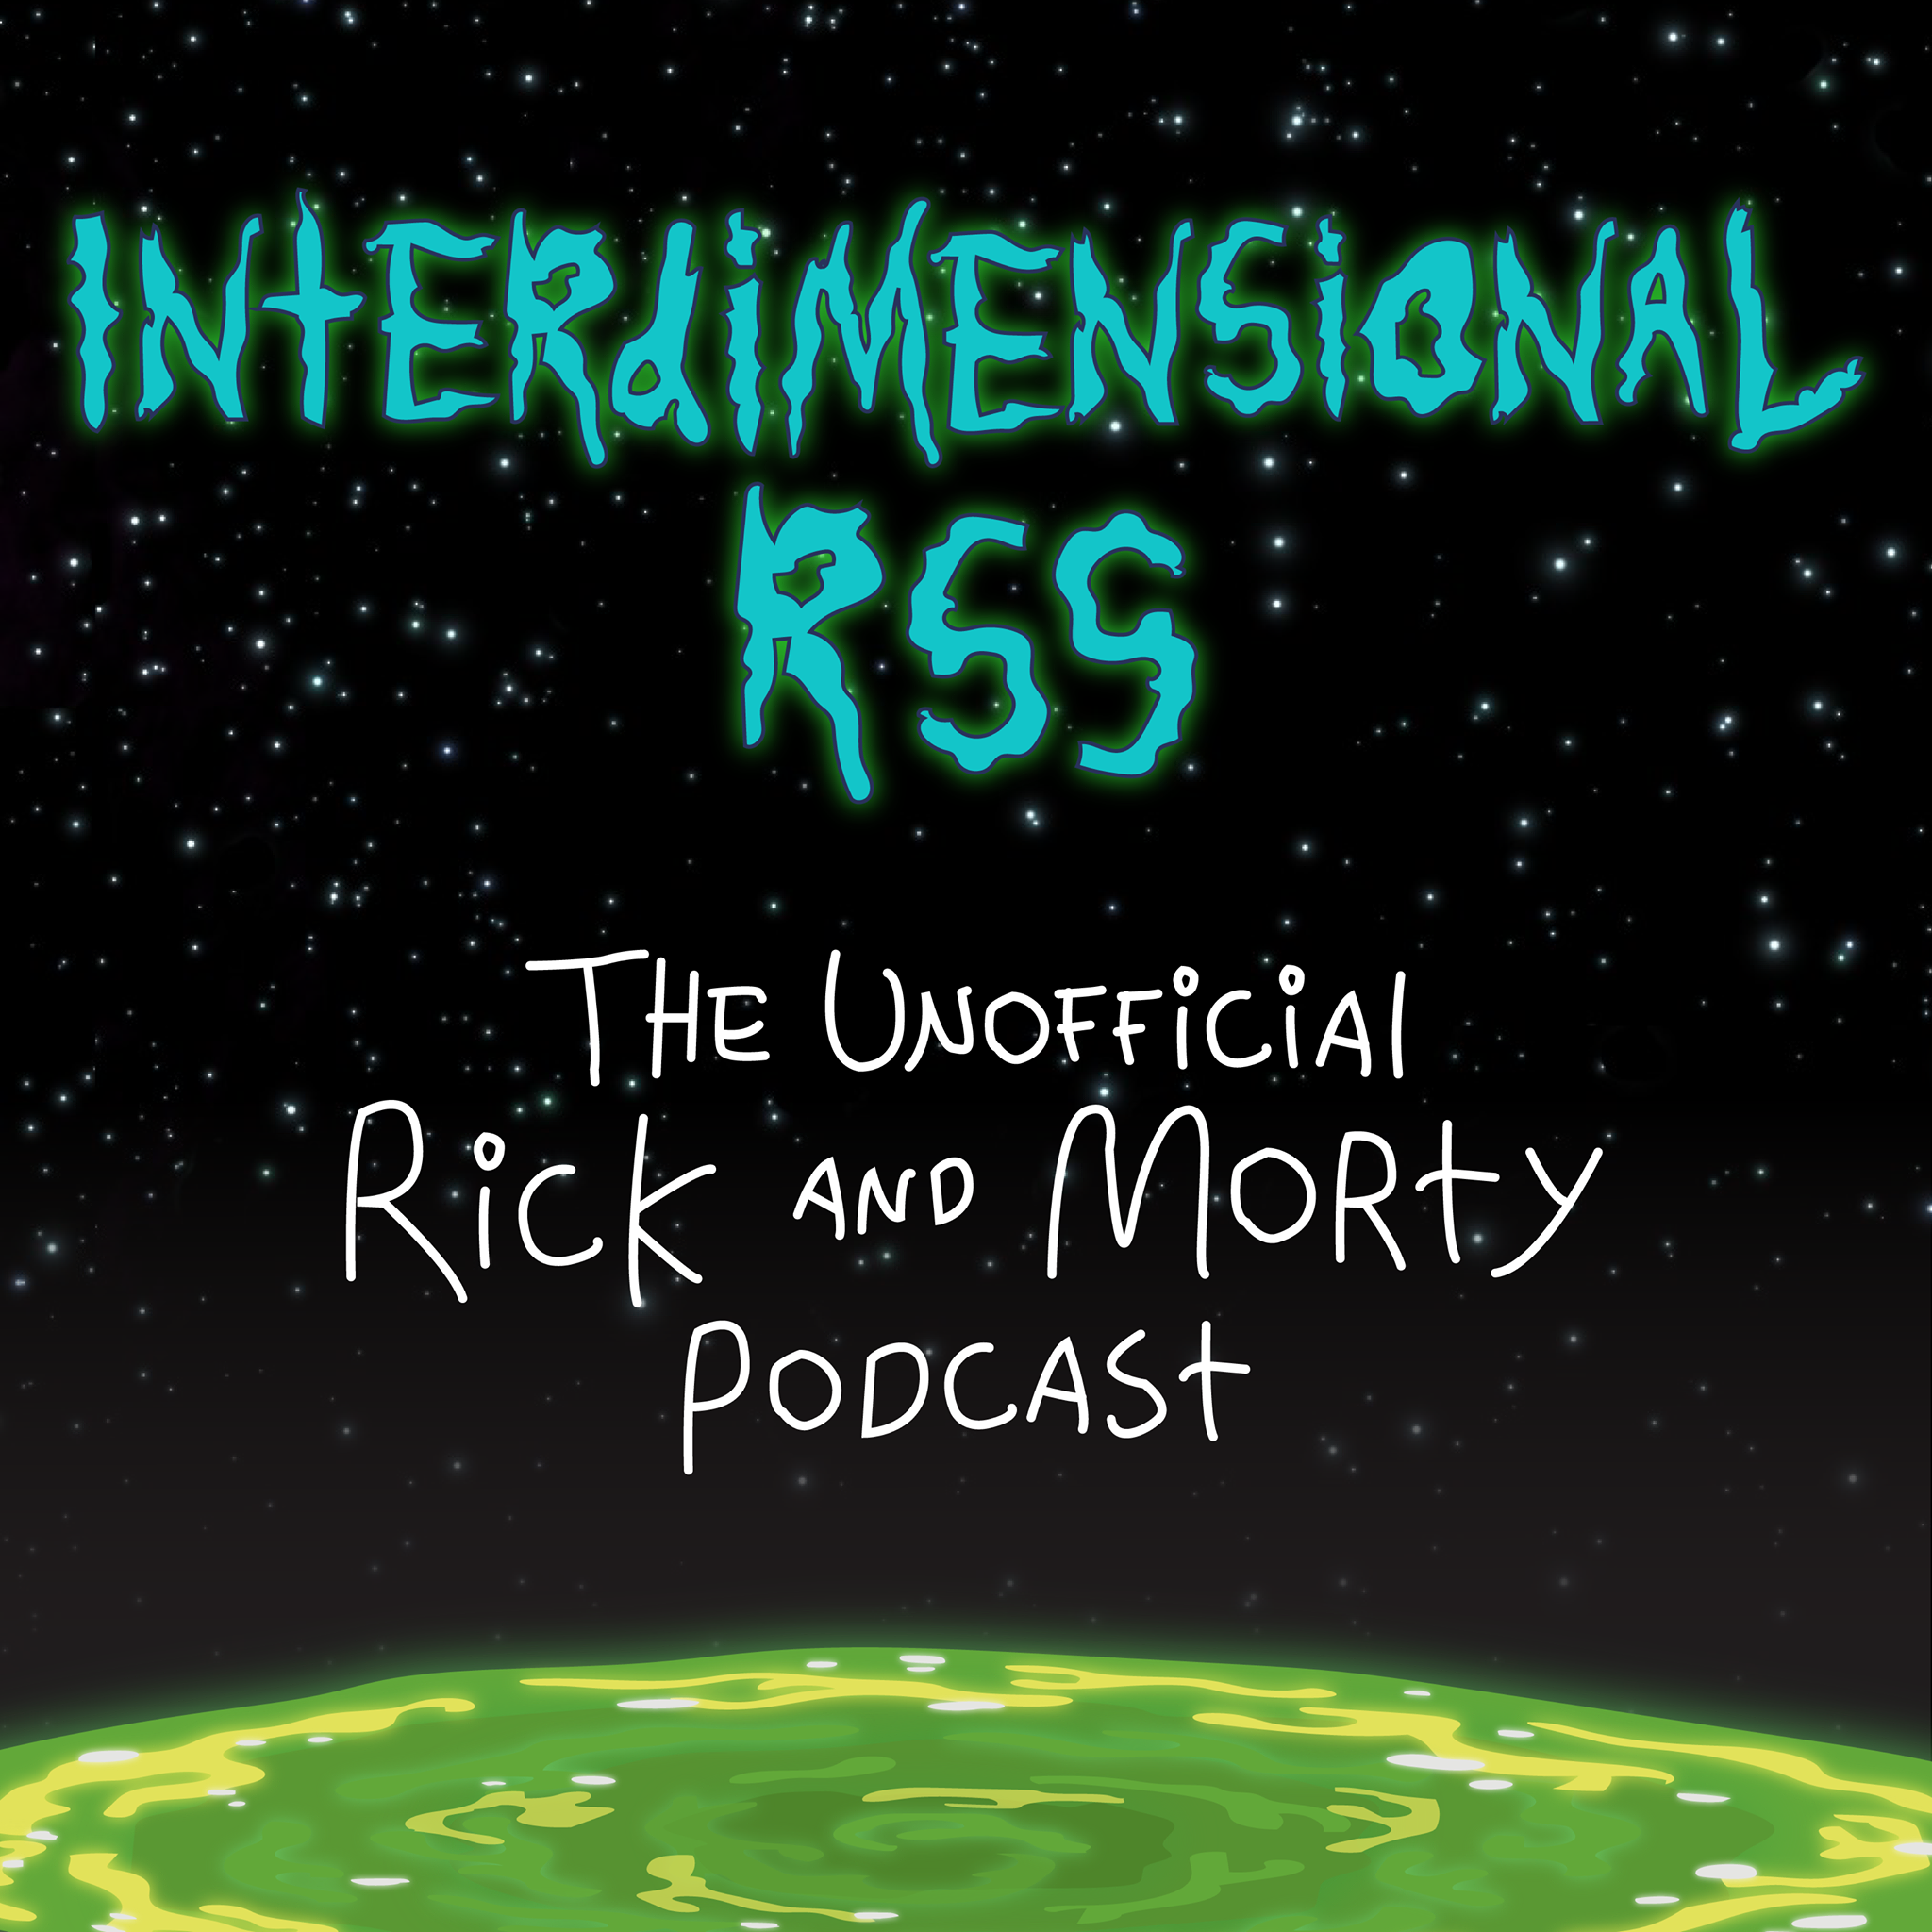 Interdimensional rss the unofficial rick and morty podcast listen via stitcher radio on demand - Rick and morty download ...